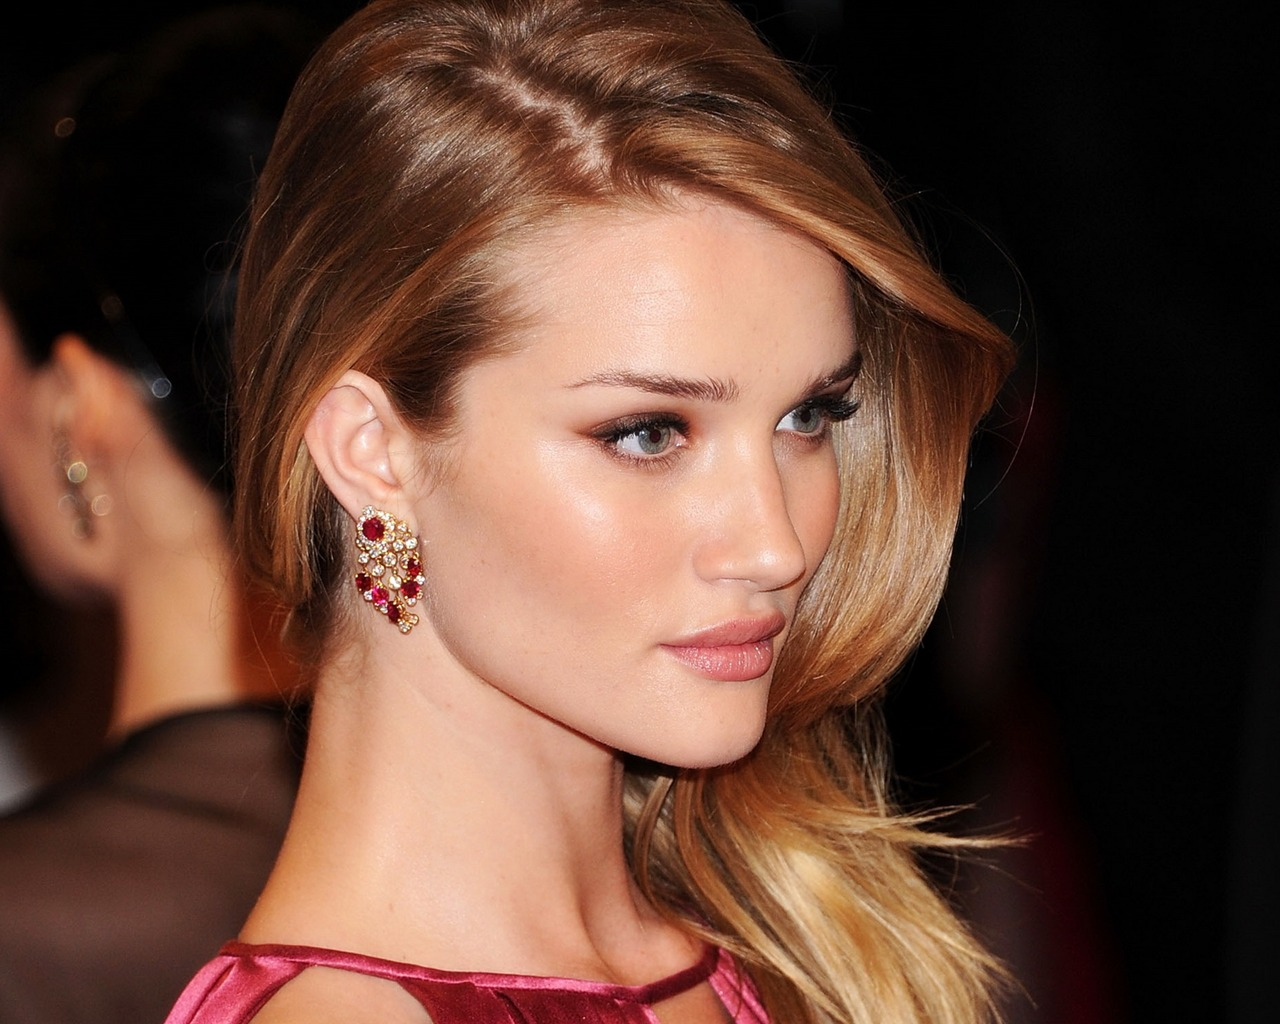 Rosie Huntington Whiteley #006 - 1280x1024 Wallpapers Pictures Photos Images